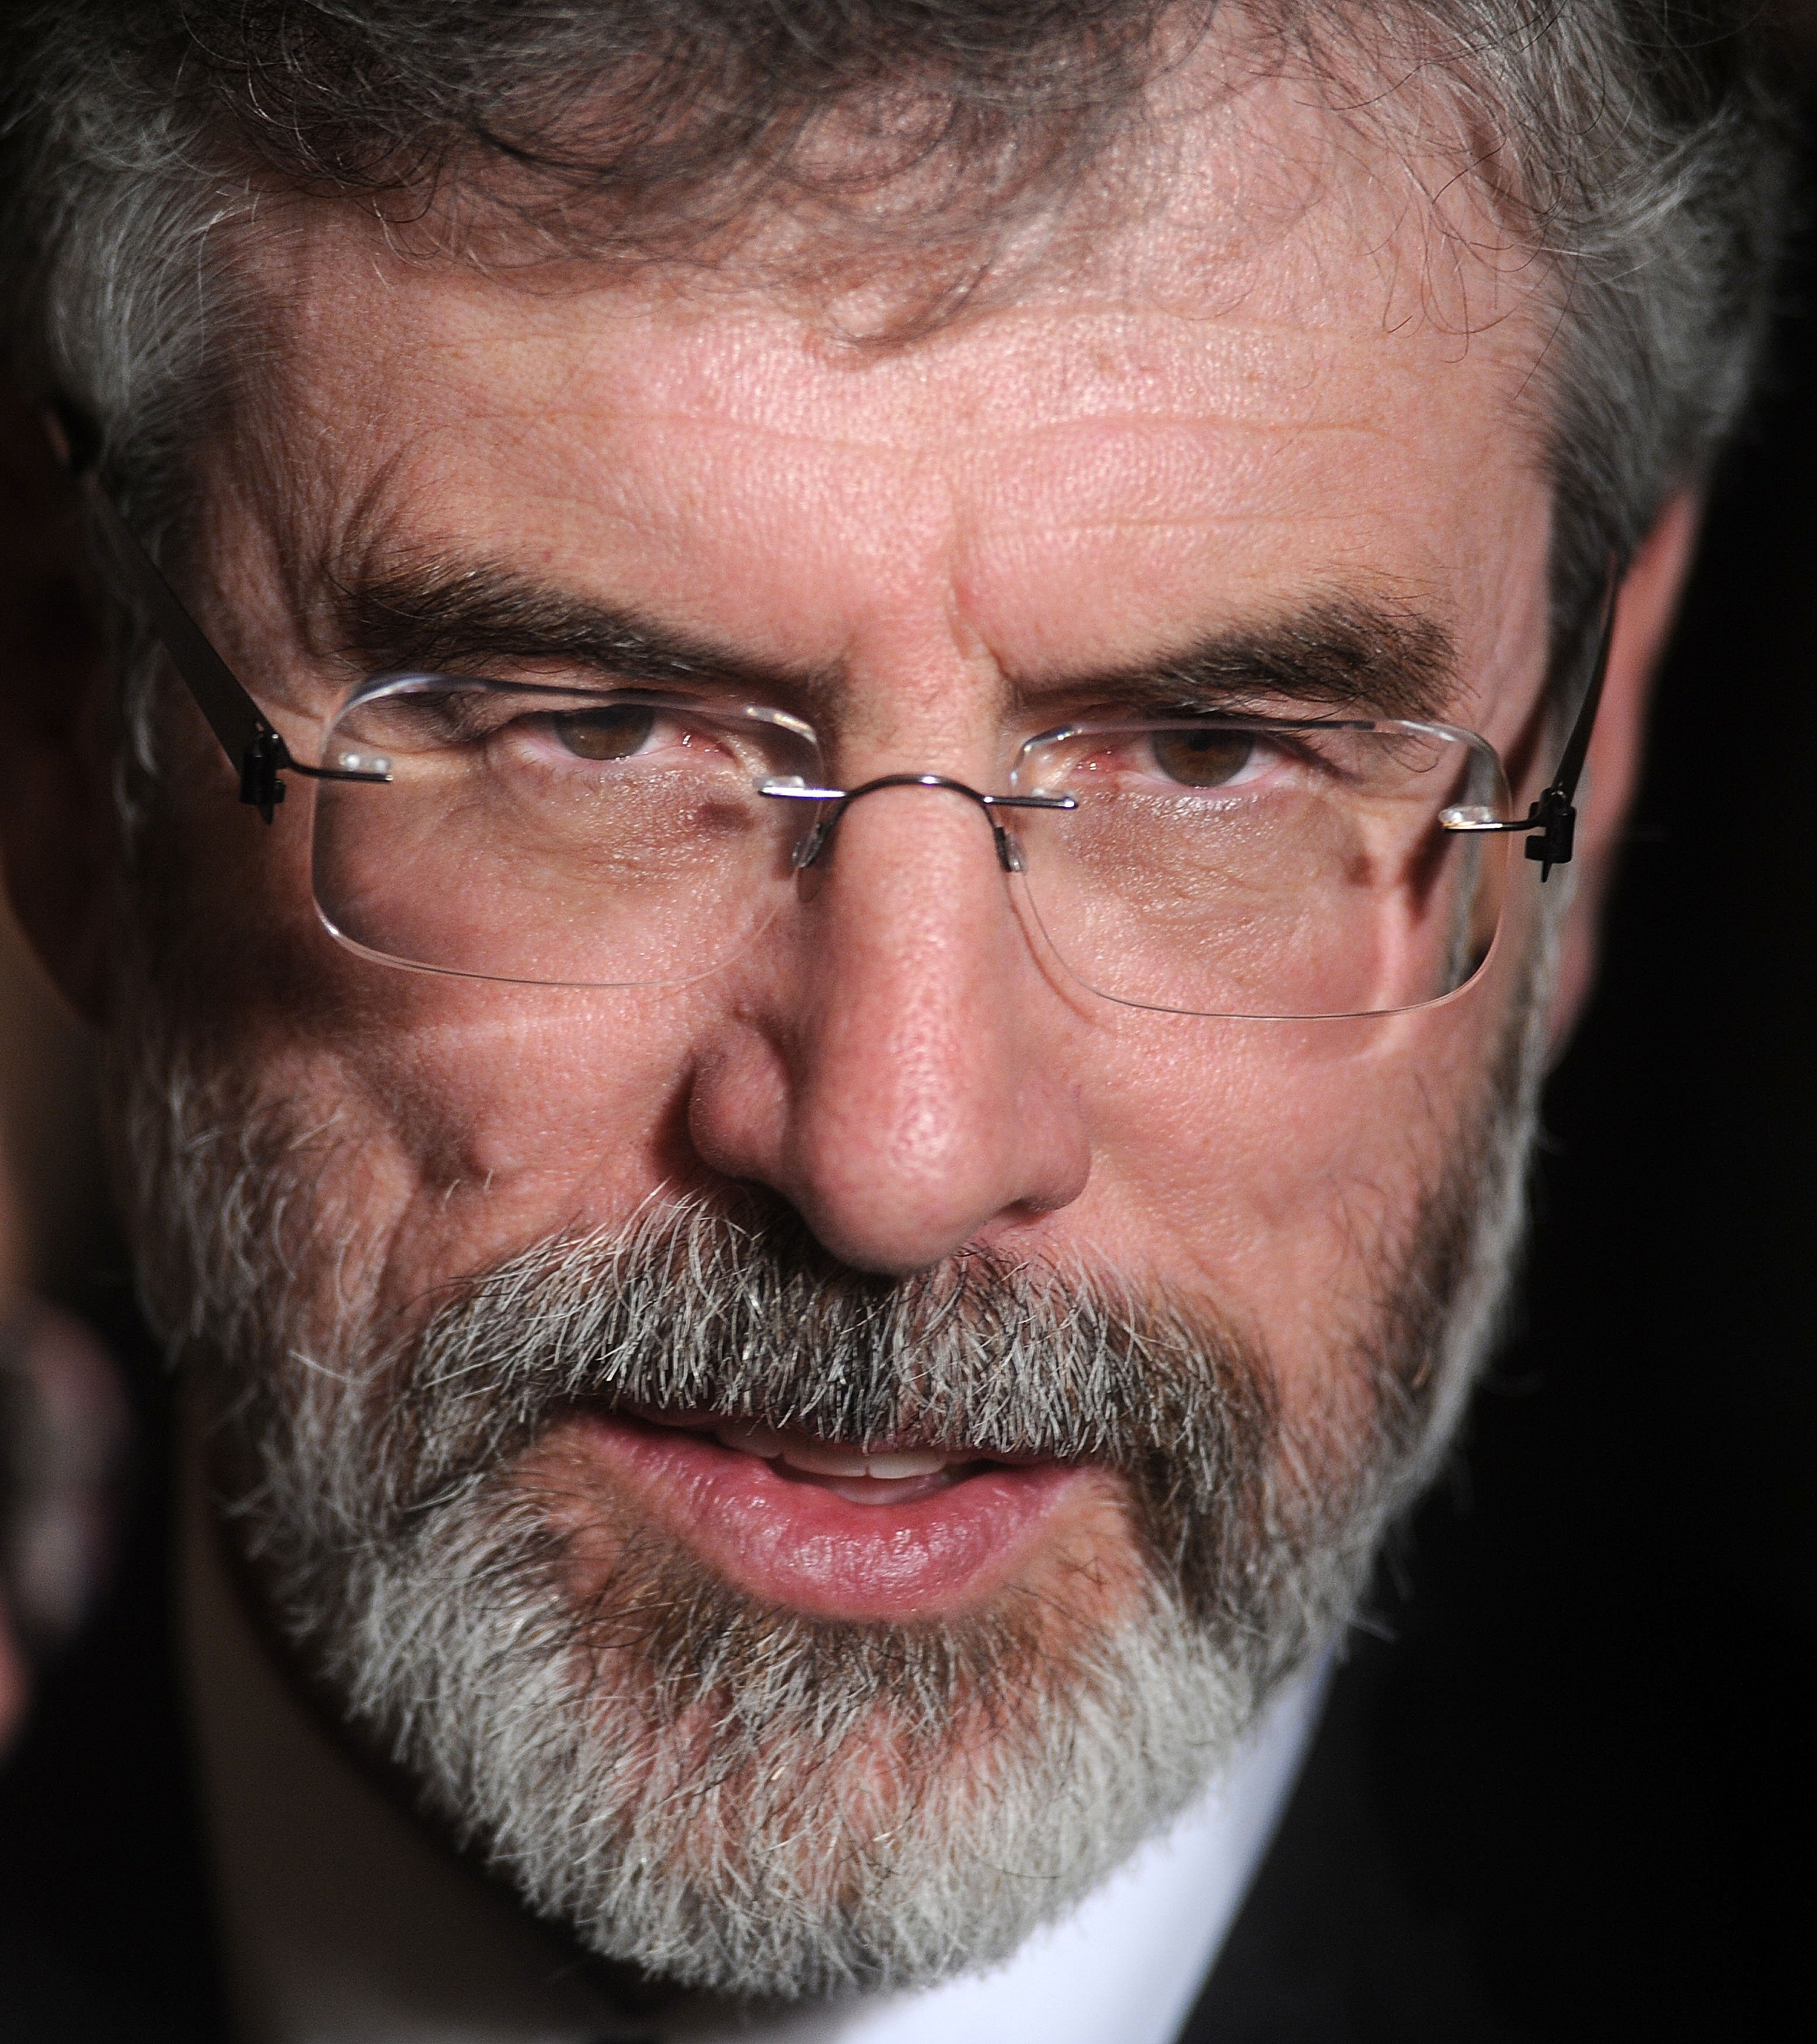 Former Sinn Féin leader Gerry Adams attends a St. Patrick's Day reception in the East Room of the White House on March 17, 2011 in Washington, DC.